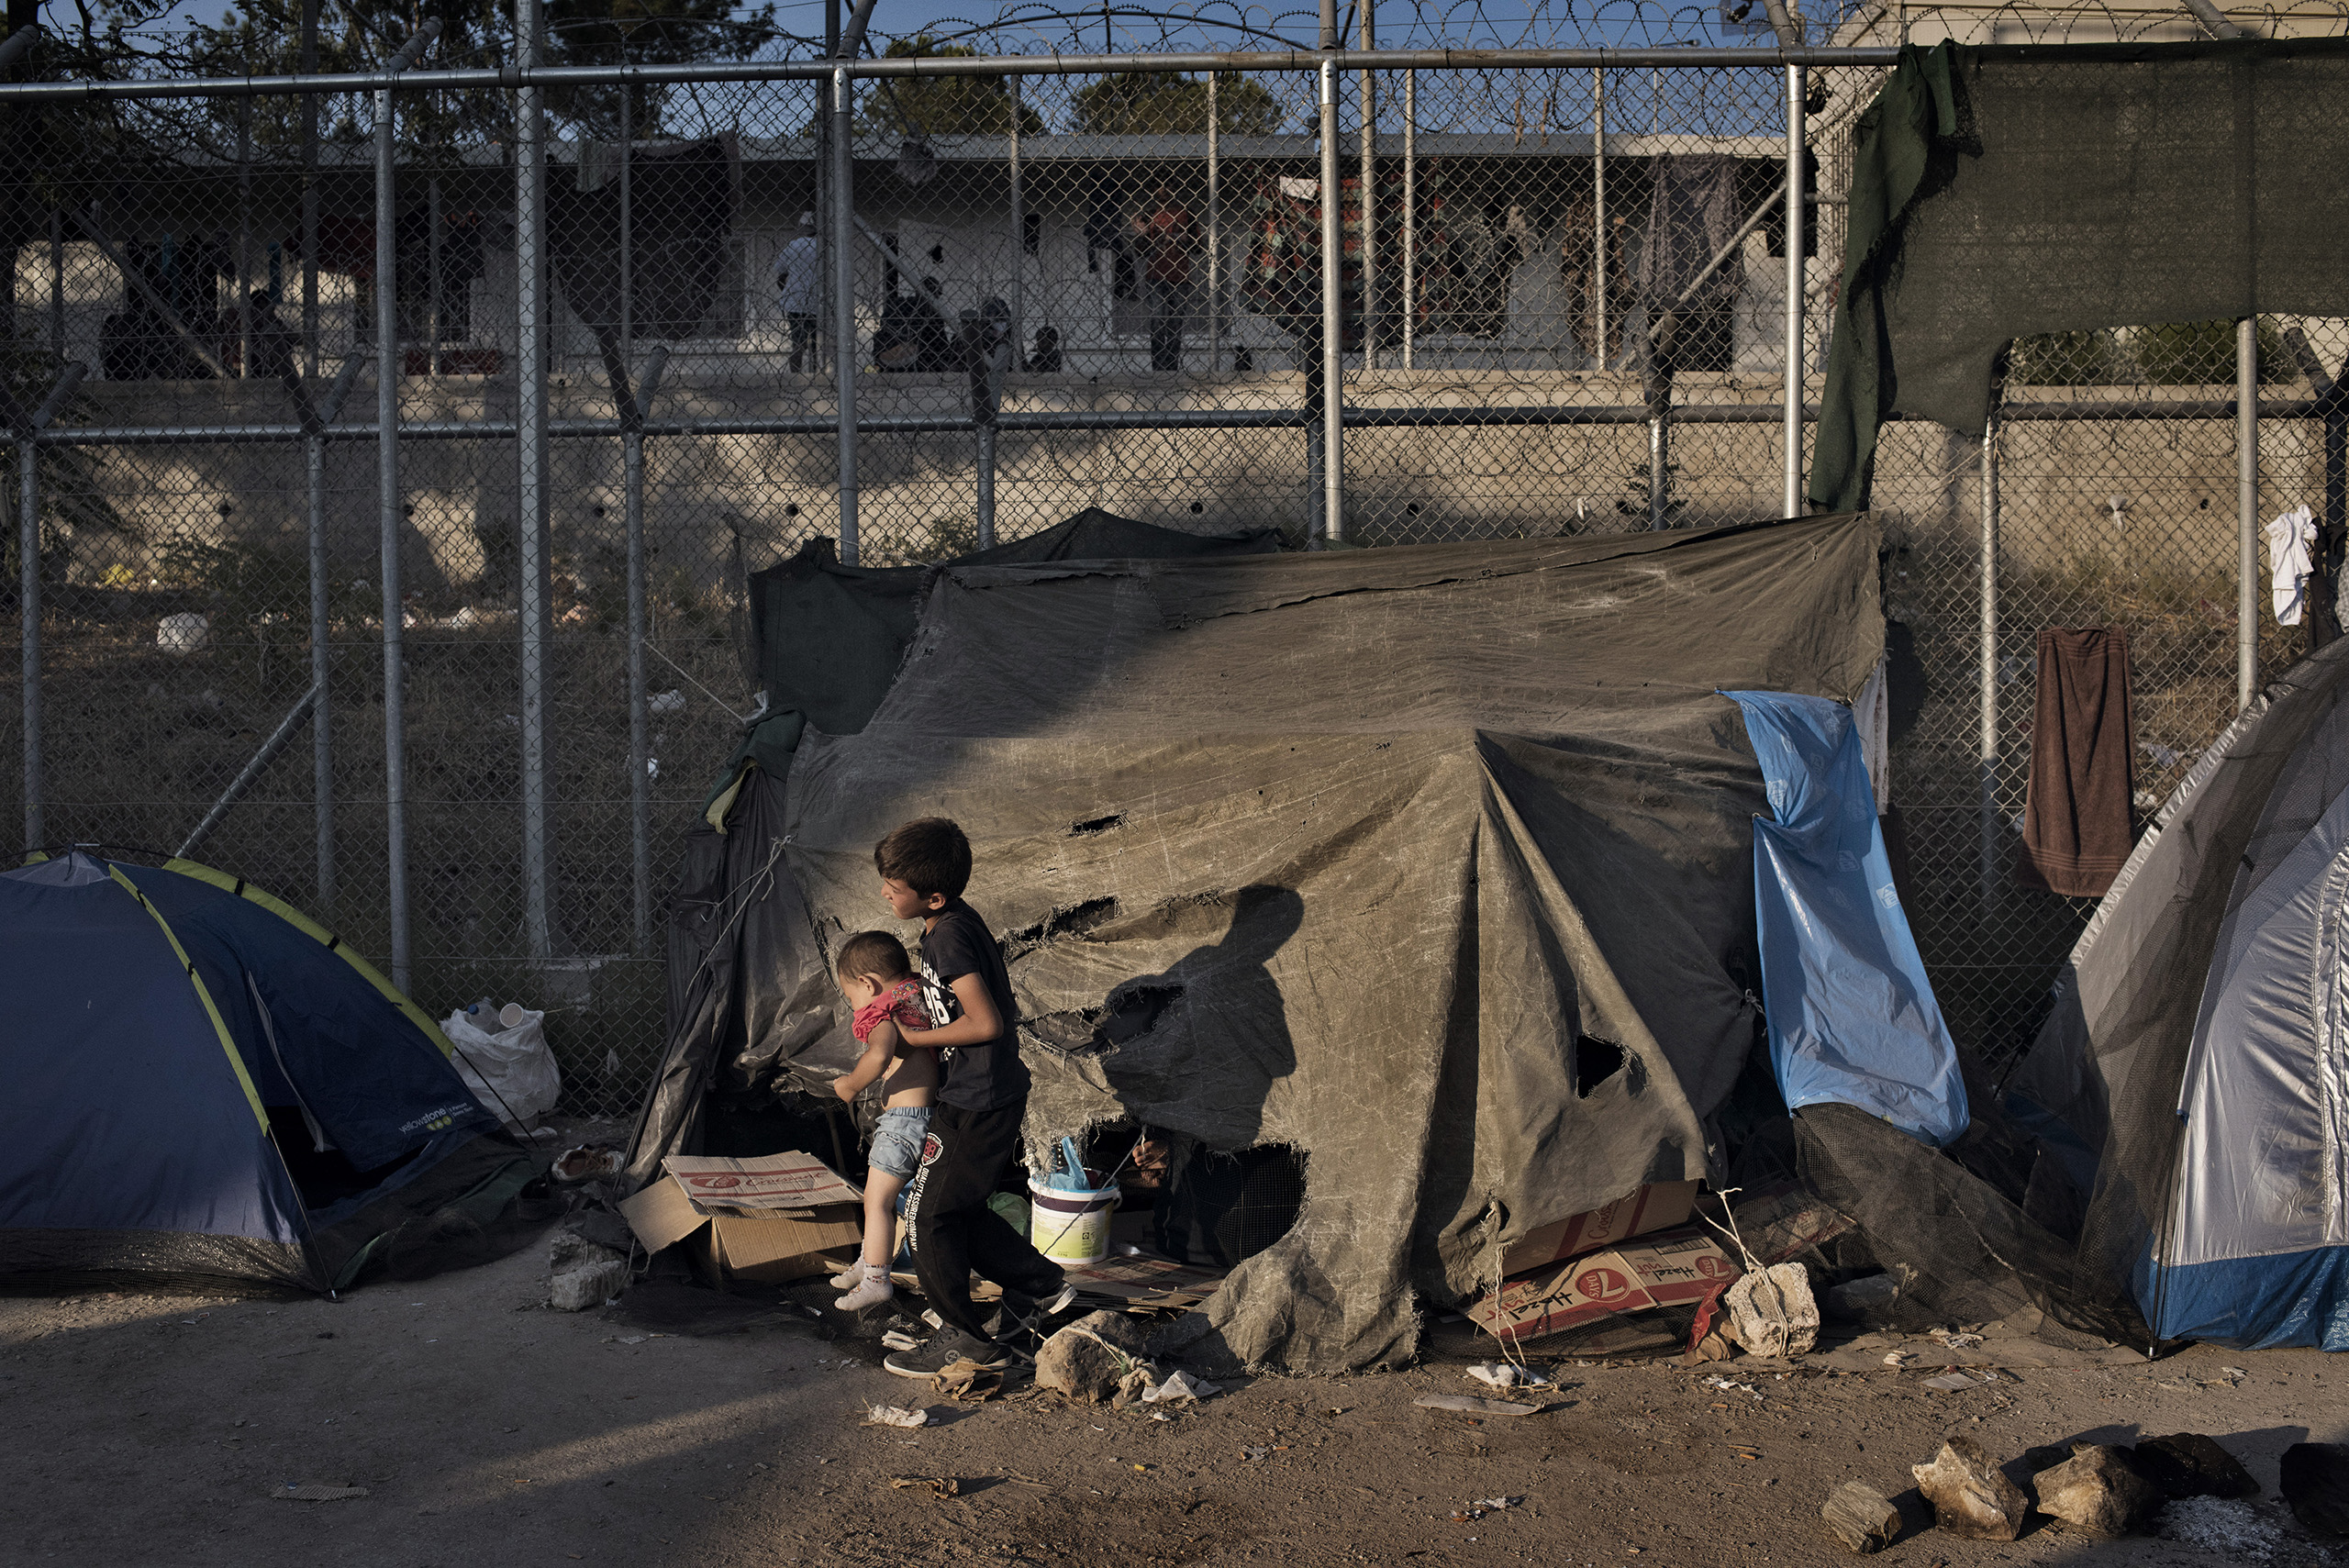 Tents full of migrants stand outside a detention and processing center for asylum seekers on the Greek island of Lesbos, one of the most crowded and volatile outposts for the unprecedented wave of migrants coming to the European Union from conflict zones across the Muslim world.